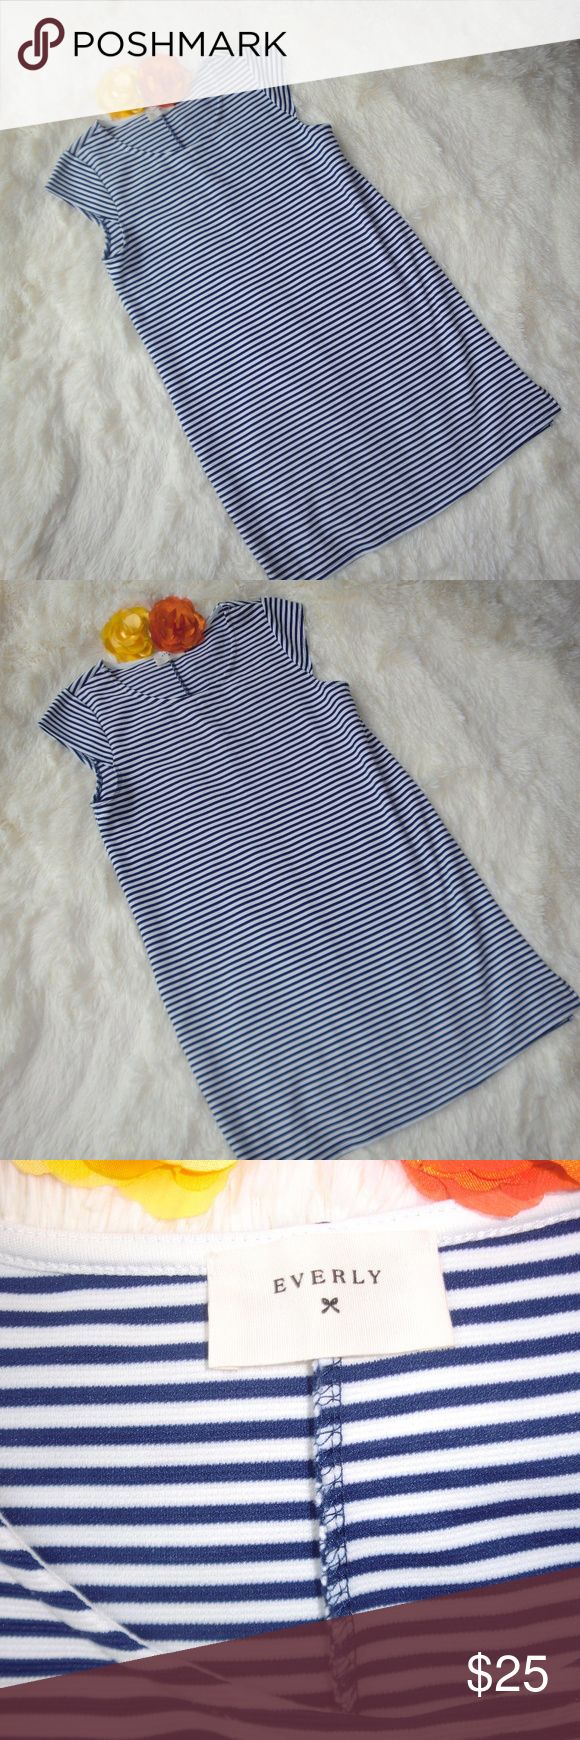 Nordstrom Everly Dress Striped Blue White EUC M Adorable dress by Everly in blue and white stripes, size medium.  Dress has short sleeves and two small slits on either side of hem as pictured.  Dress is in excellent condition with no spots or tears. Everly Dresses